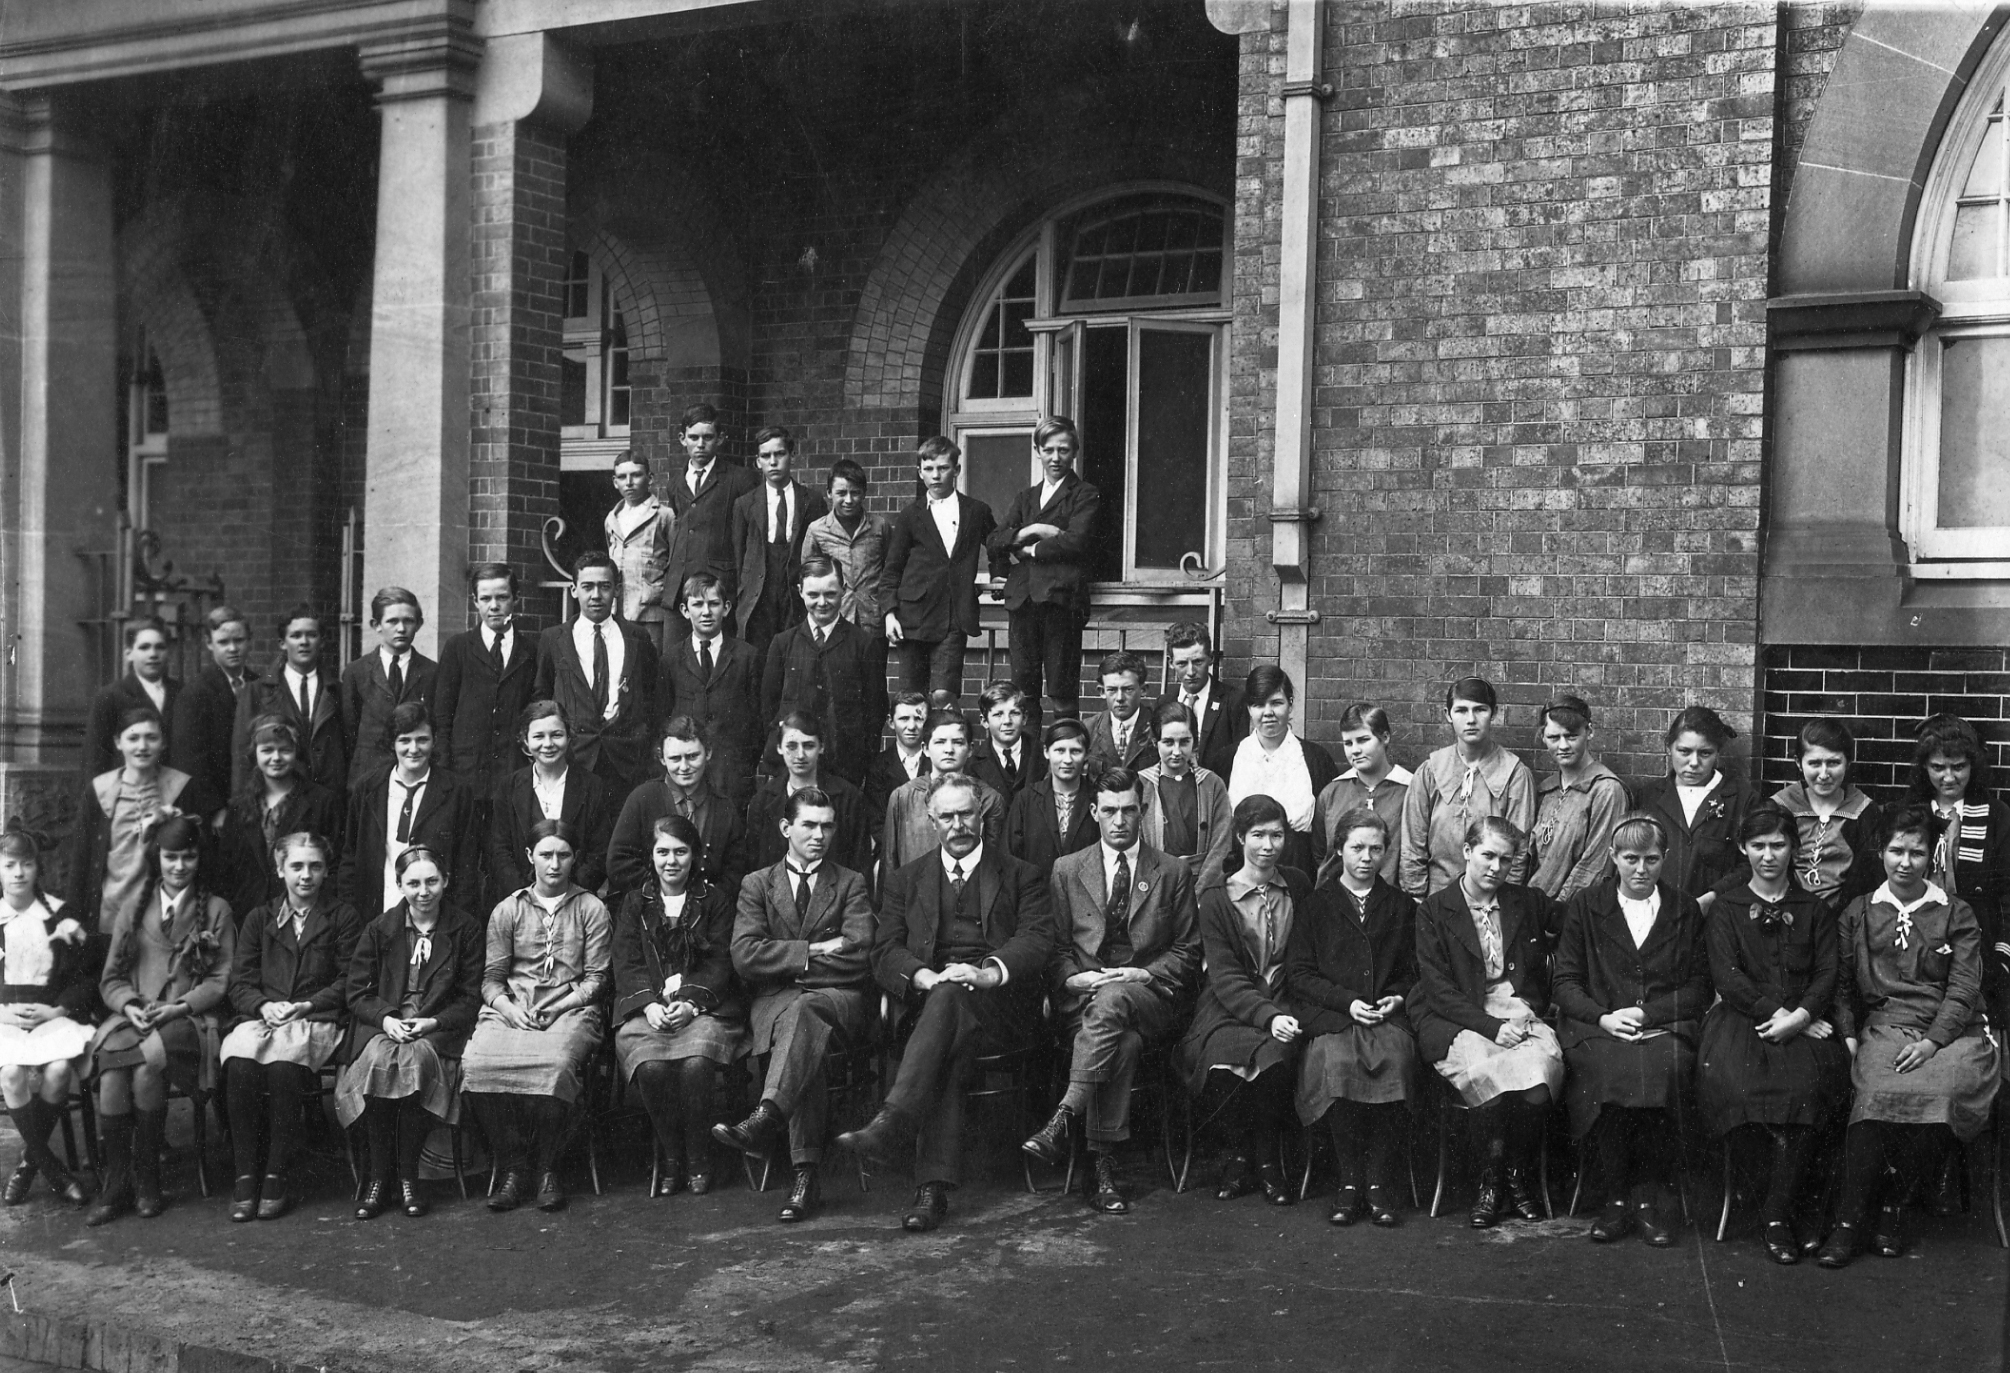 Staff and students of Toowoomba High School 1919. (Courtesy Toowoomba Historical Society)